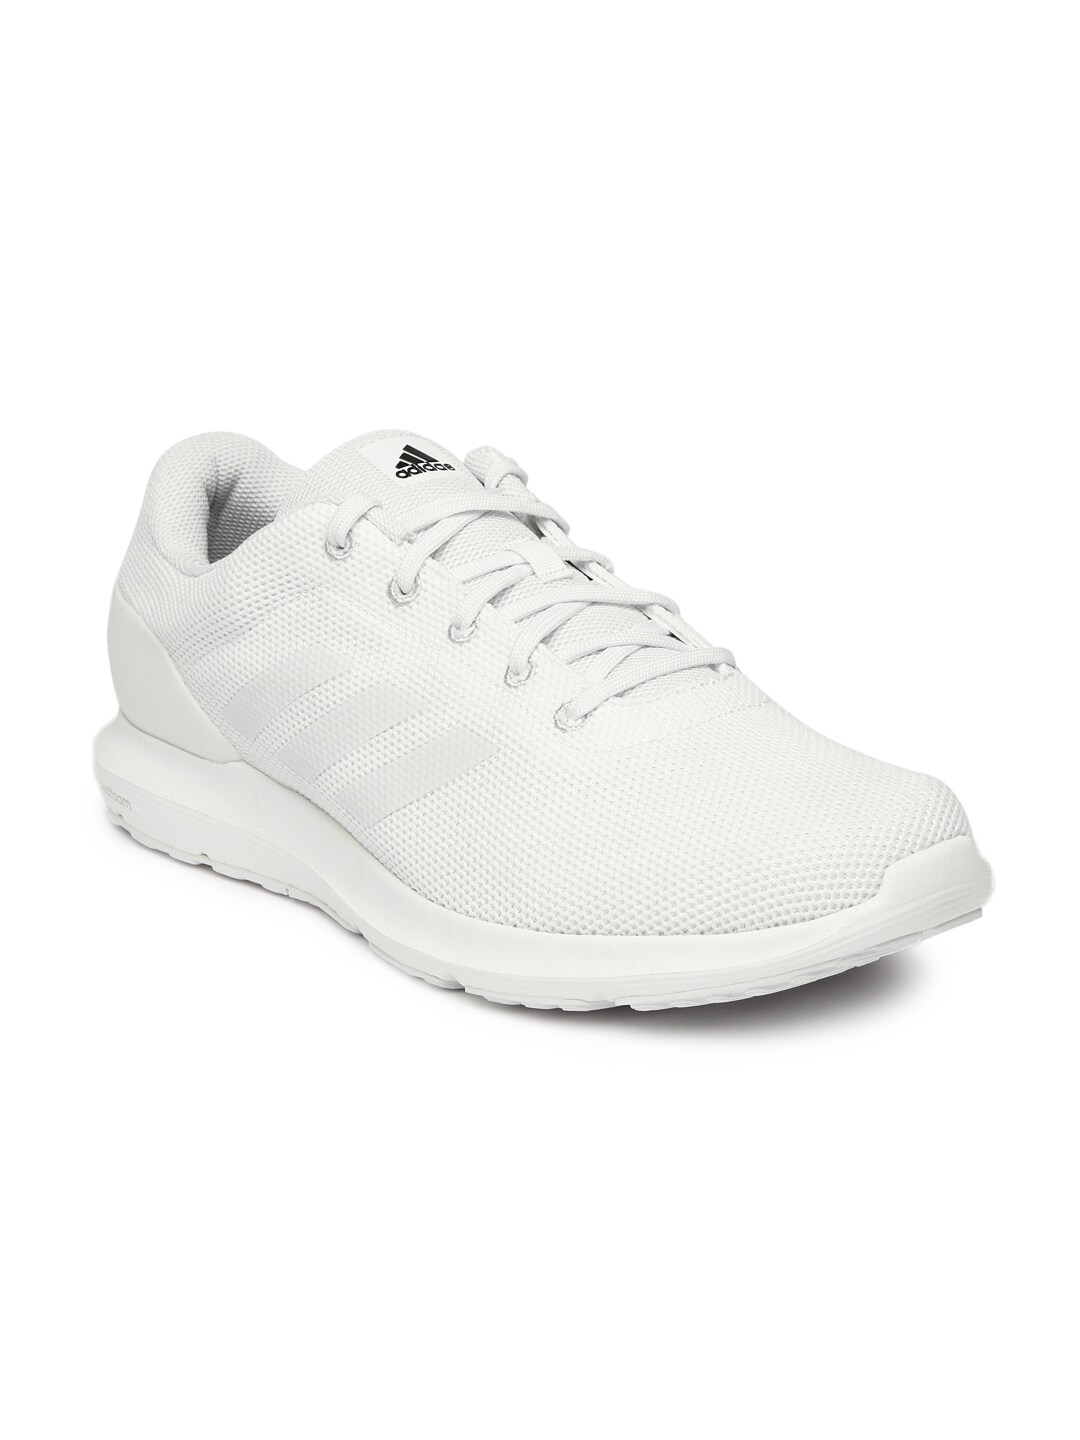 Adidas aq2187 Men White Cosmic Running Shoes - Best Price in ... 0a3e23ff2